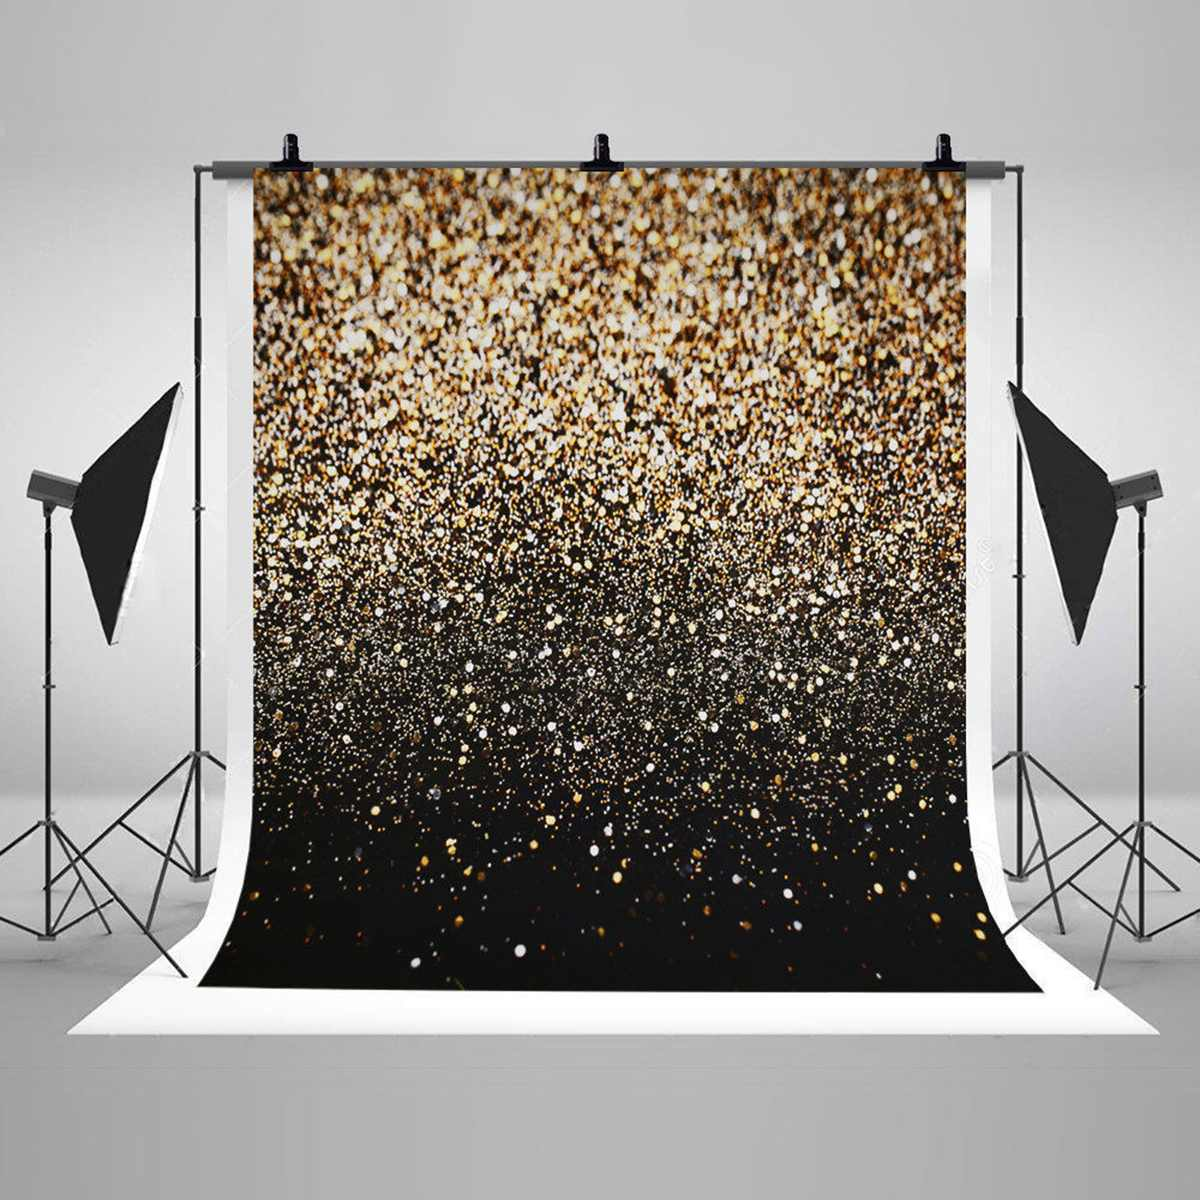 Vinyl Party Glitter Black Gold Dot Photo Studio Backdrop Photography Background For Photo Studio photographic backgroundVinyl Party Glitter Black Gold Dot Photo Studio Backdrop Photography Background For Photo Studio photographic background